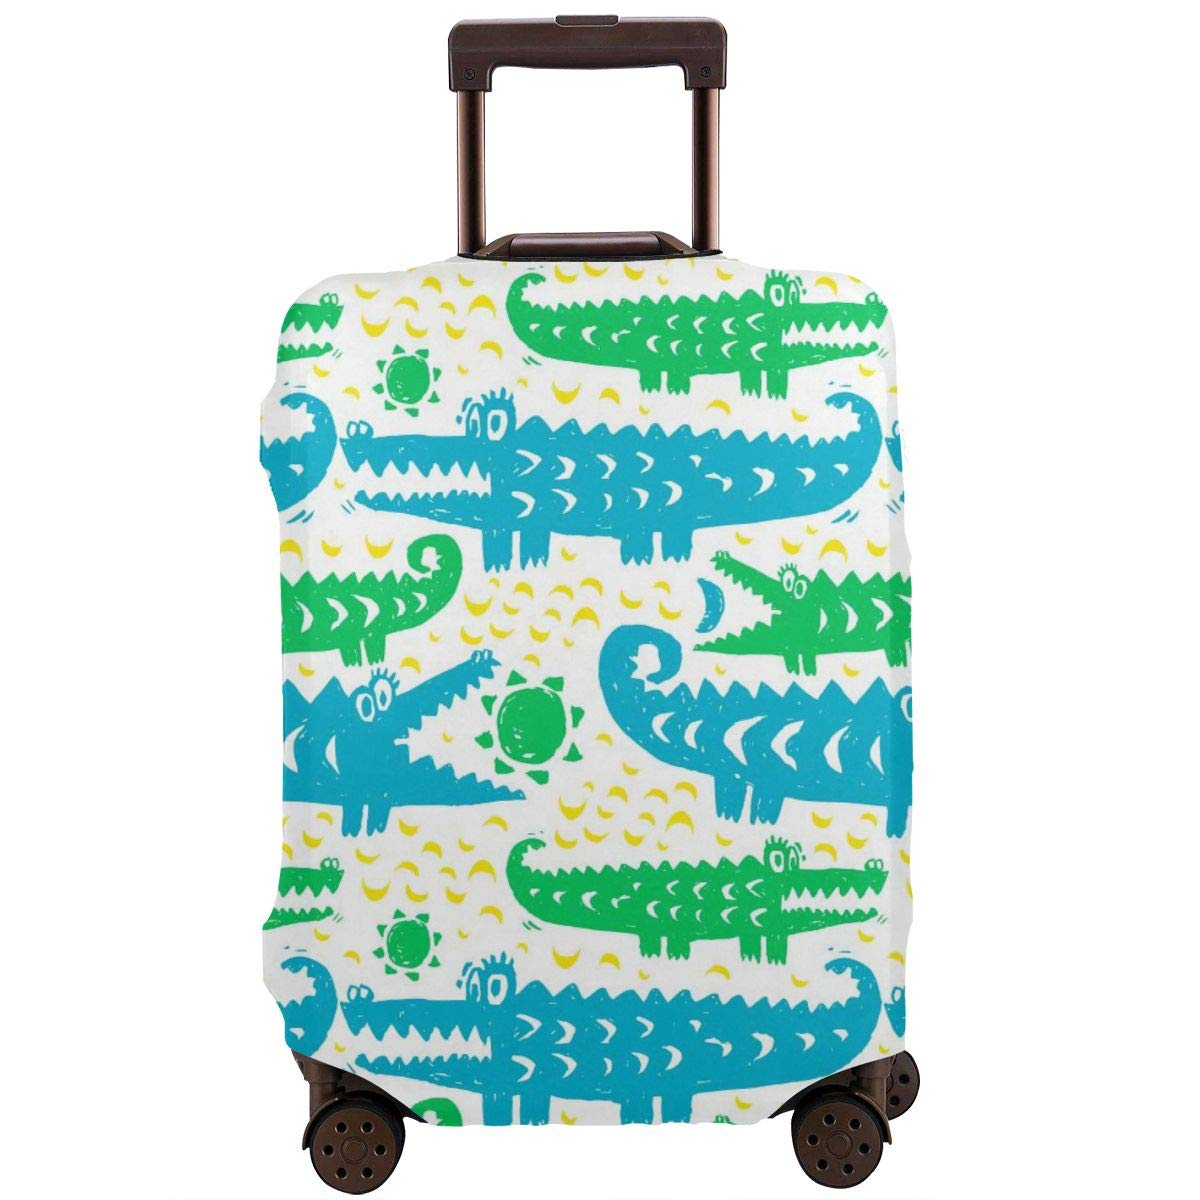 African Animal Crocodile Travel Luggage Cover Suitcase Protector Washable Zipper Baggage Cover